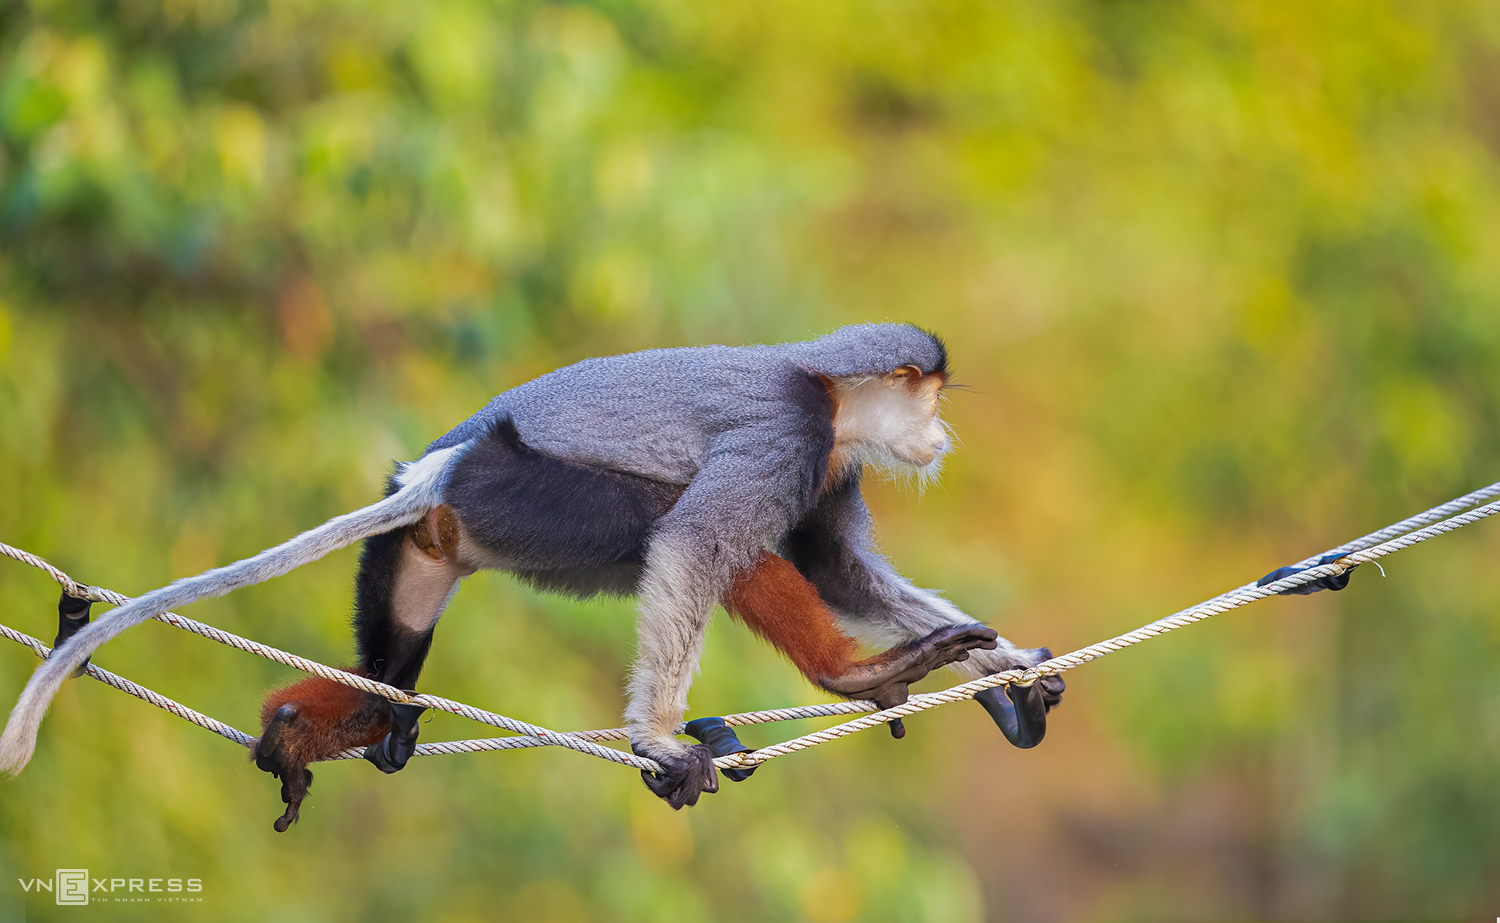 Son Tra is at its most enchanting from April to June. When it rains the douc langurs begin their cacophonic calls to their troops to start feeding.